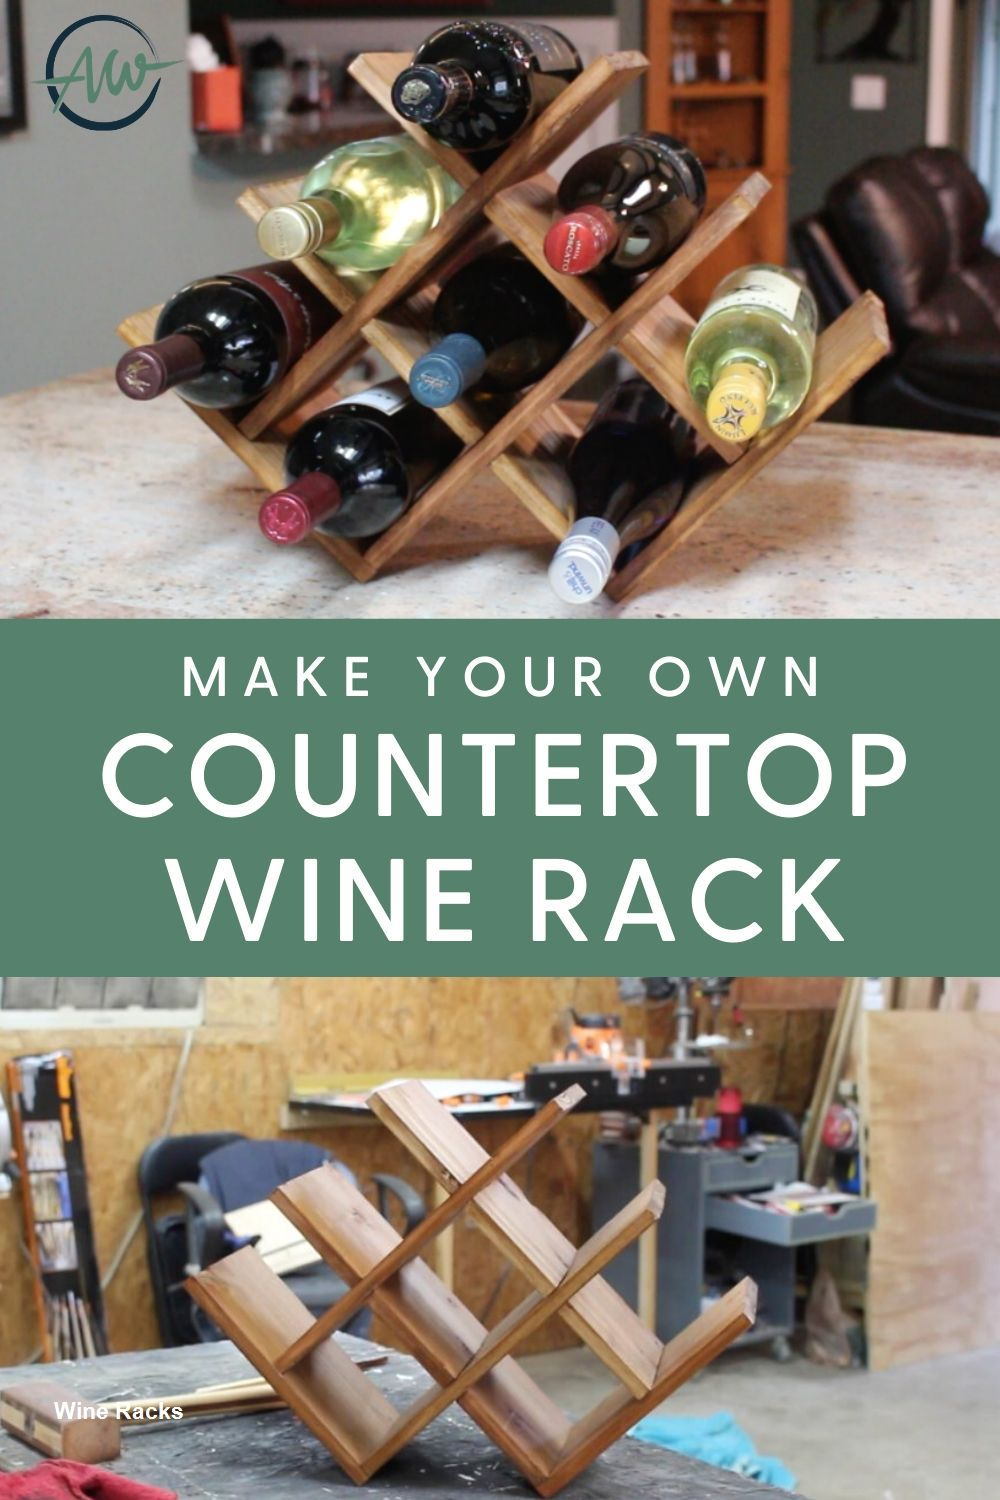 Diy Wine Rack Designs With The Unique And Trendy Styles In 2020 Countertop Wine Rack Wine Rack Design Diy Wine Rack